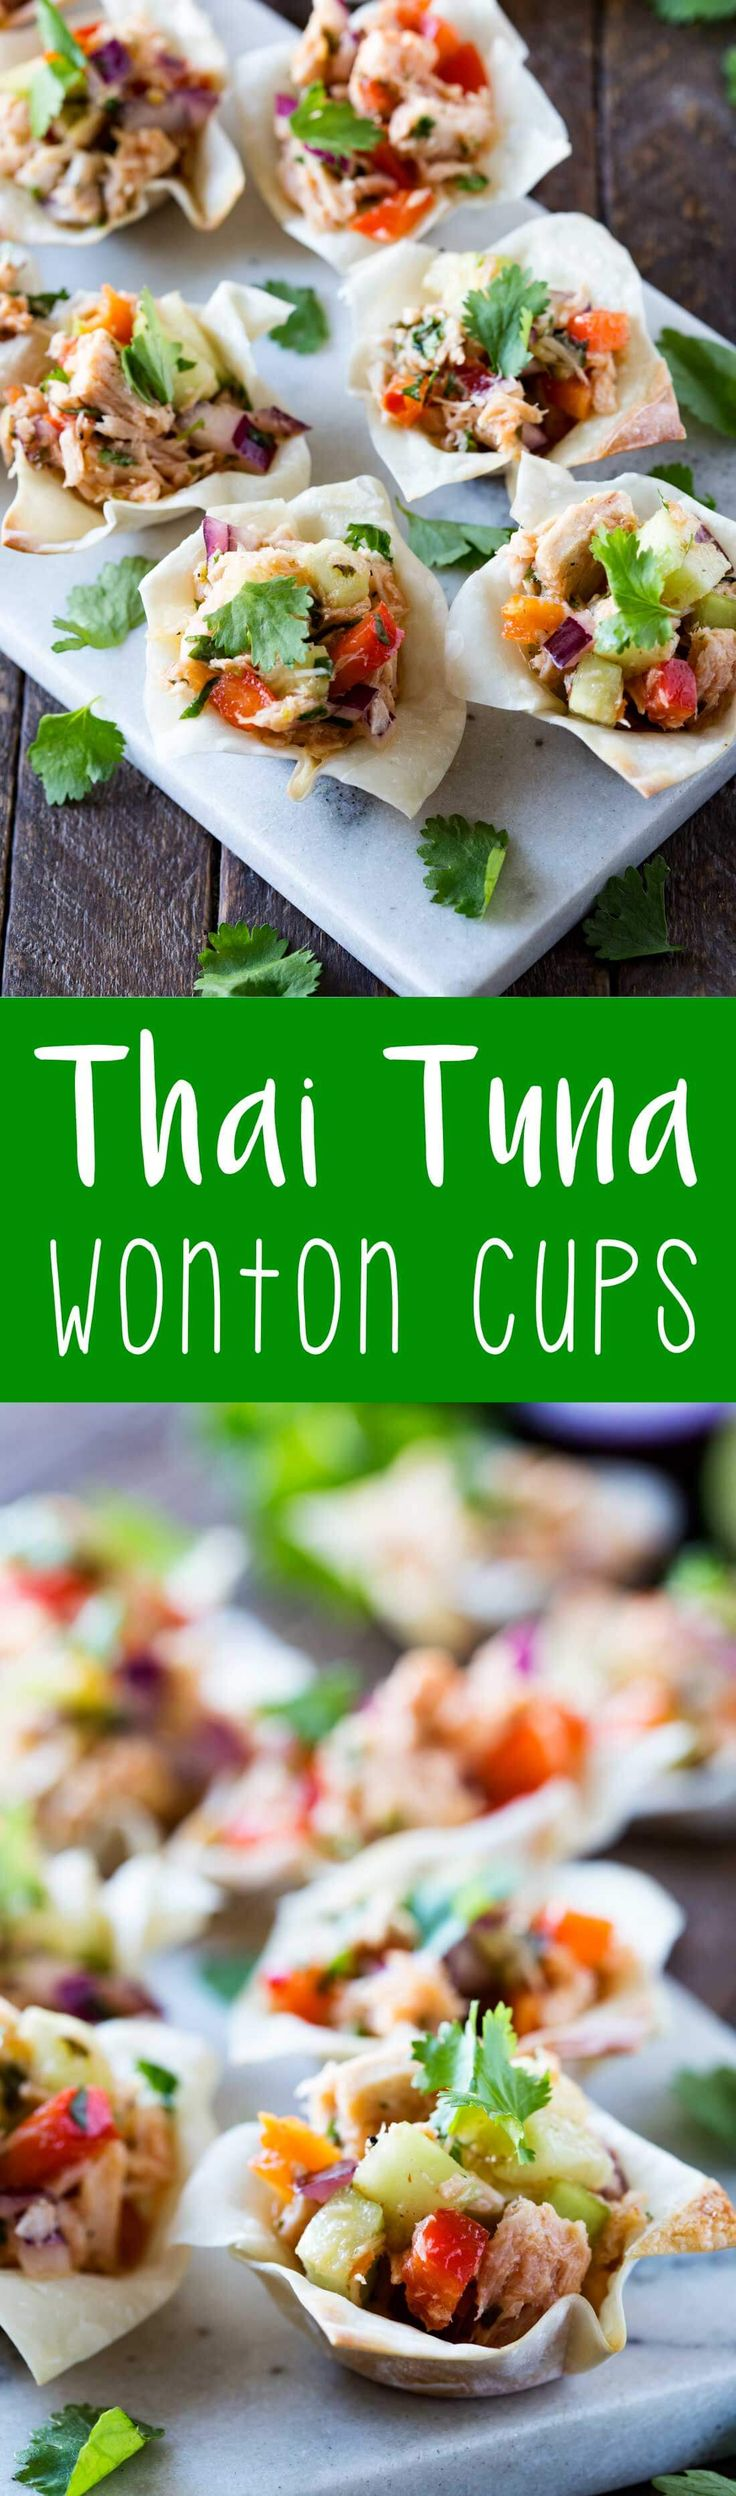 Thai Tuna Wonton Cups were the hit of my last party! #ad